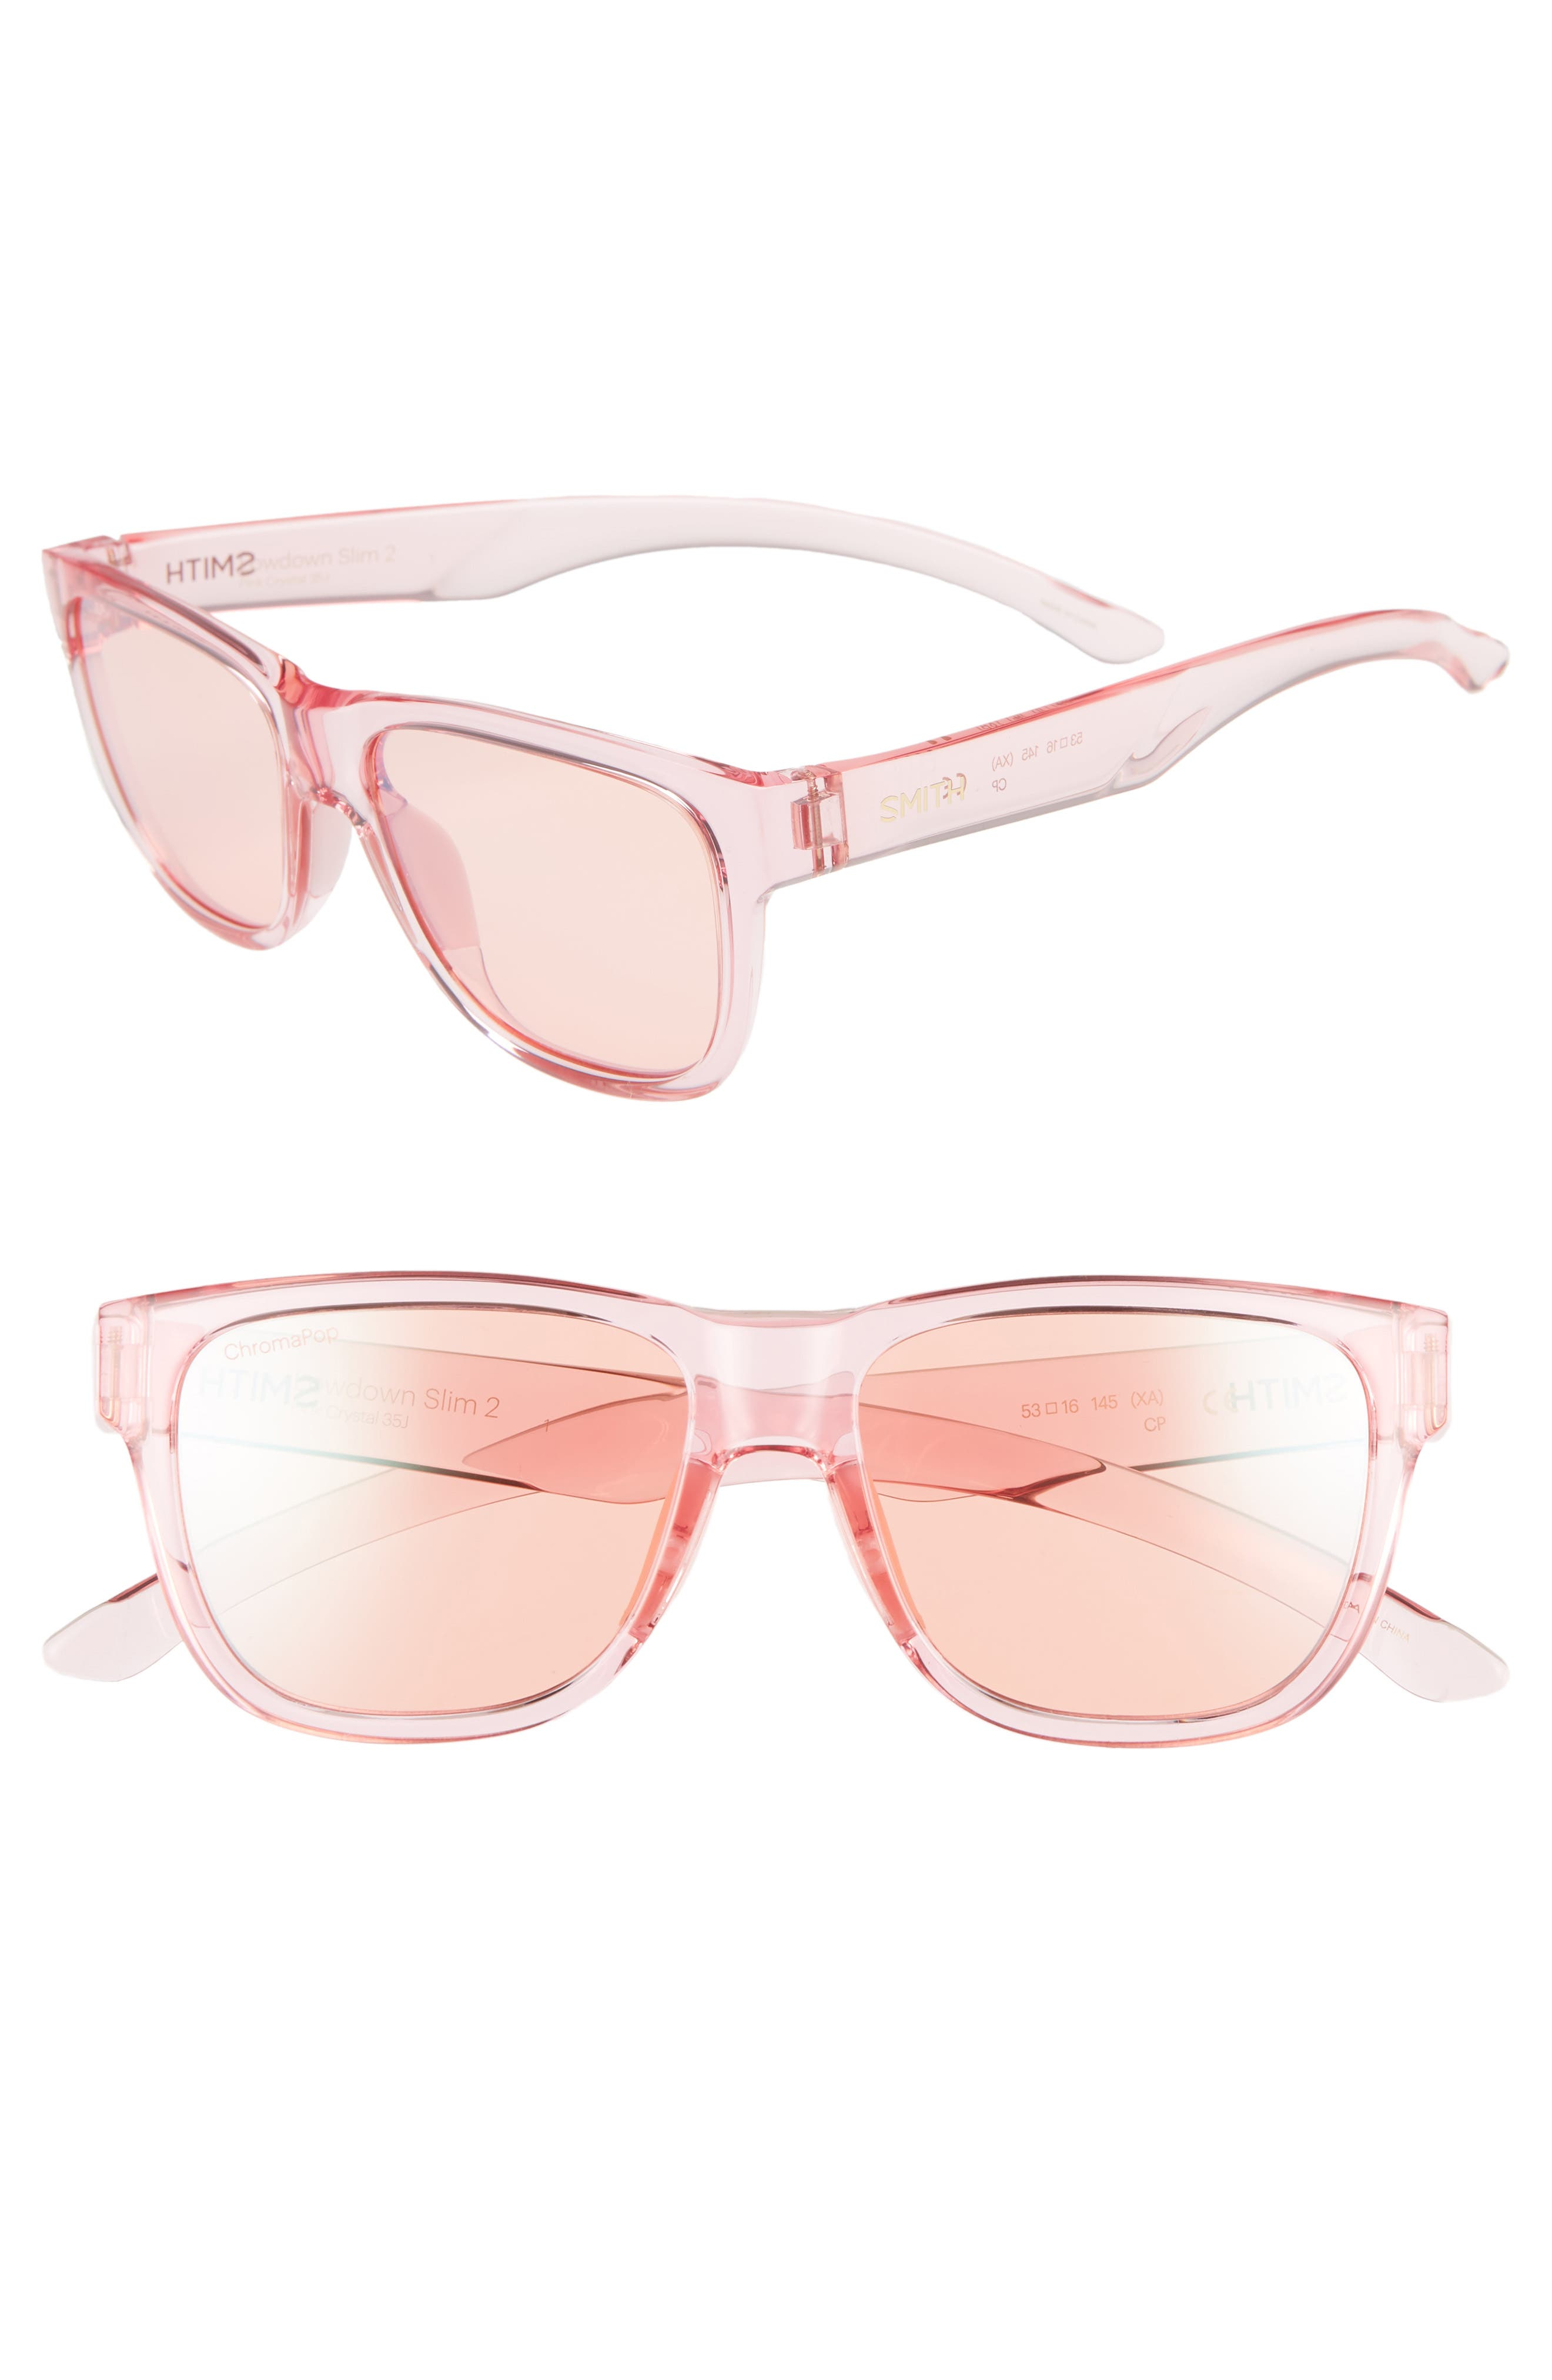 Lowdown Slim 2 53mm ChromaPop<sup>™</sup> Square Sunglasses,                             Main thumbnail 1, color,                             PINK CRYSTAL